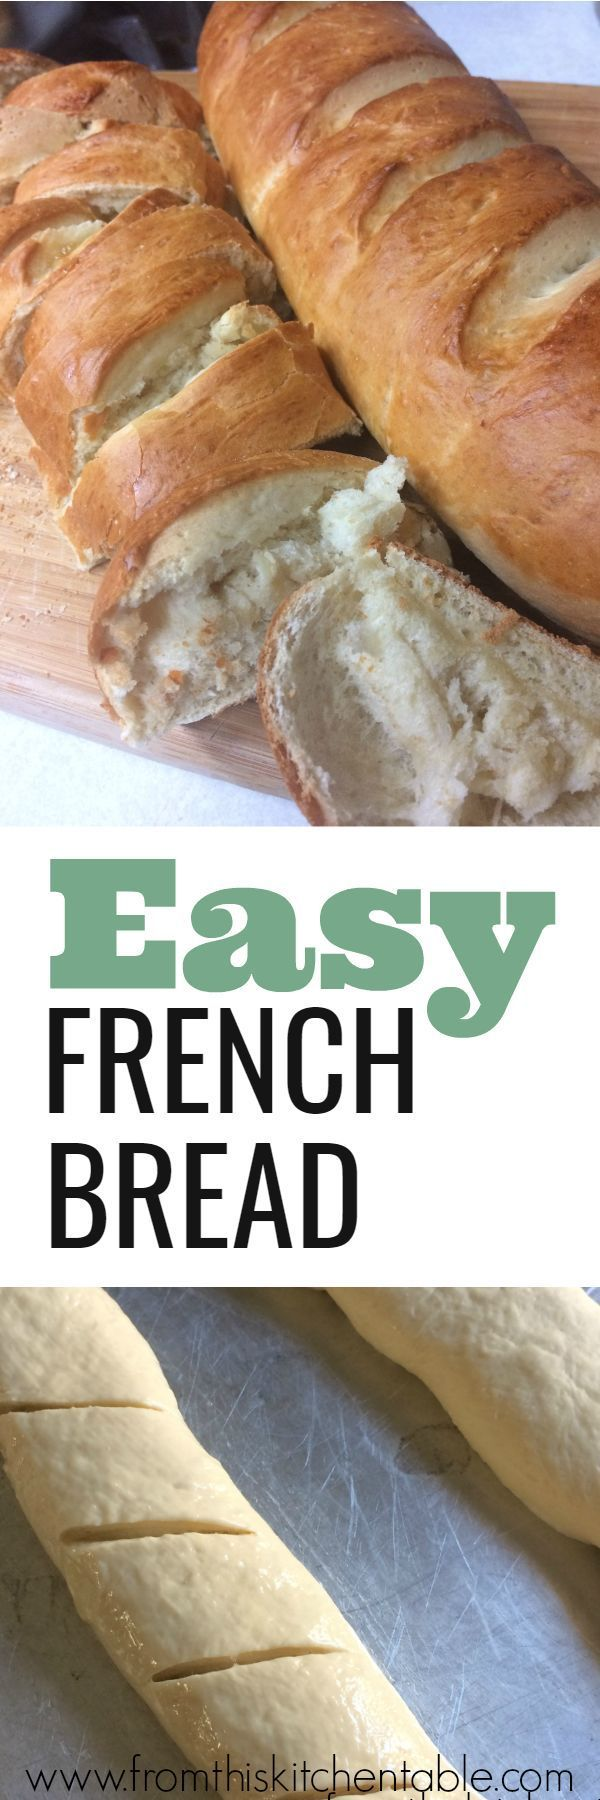 Homemade French Bread is amazing and super simple to make - you need this recipe. So tasty and the perfect addition to any supper. #bread #homemade #frenchbread #yeast #flour #easy #supper